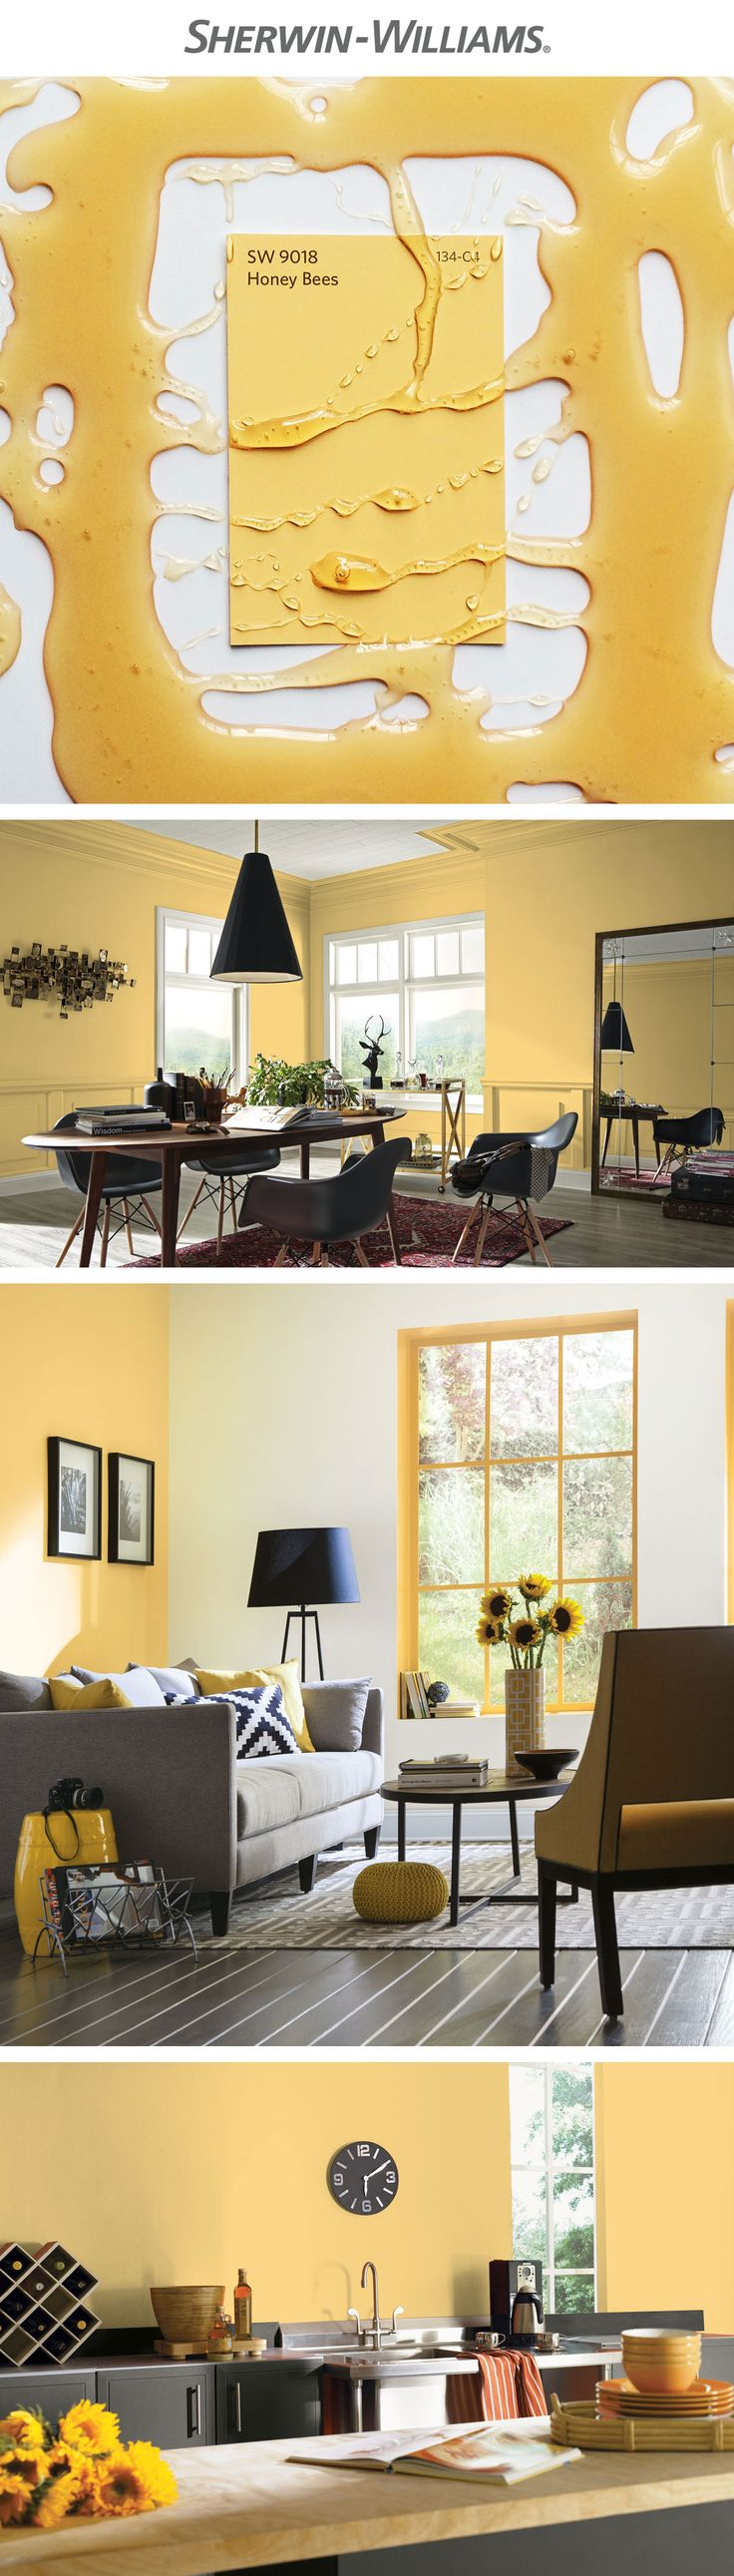 Sweeten any space with a soft, sunny hue, like April's Color of the Month, Honey Bees SW 9018.